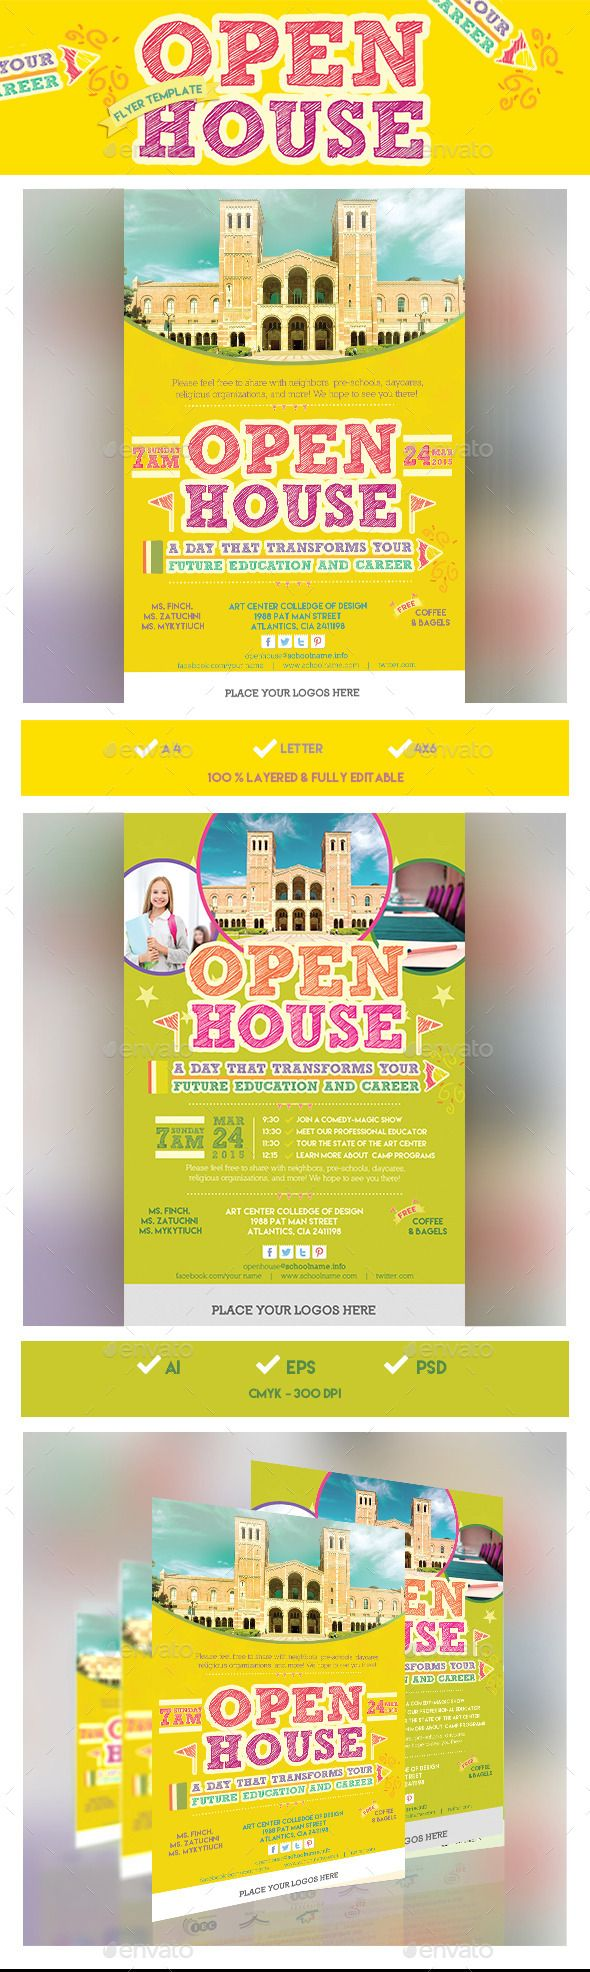 School Open House Flyer Template Design Conference Consultant